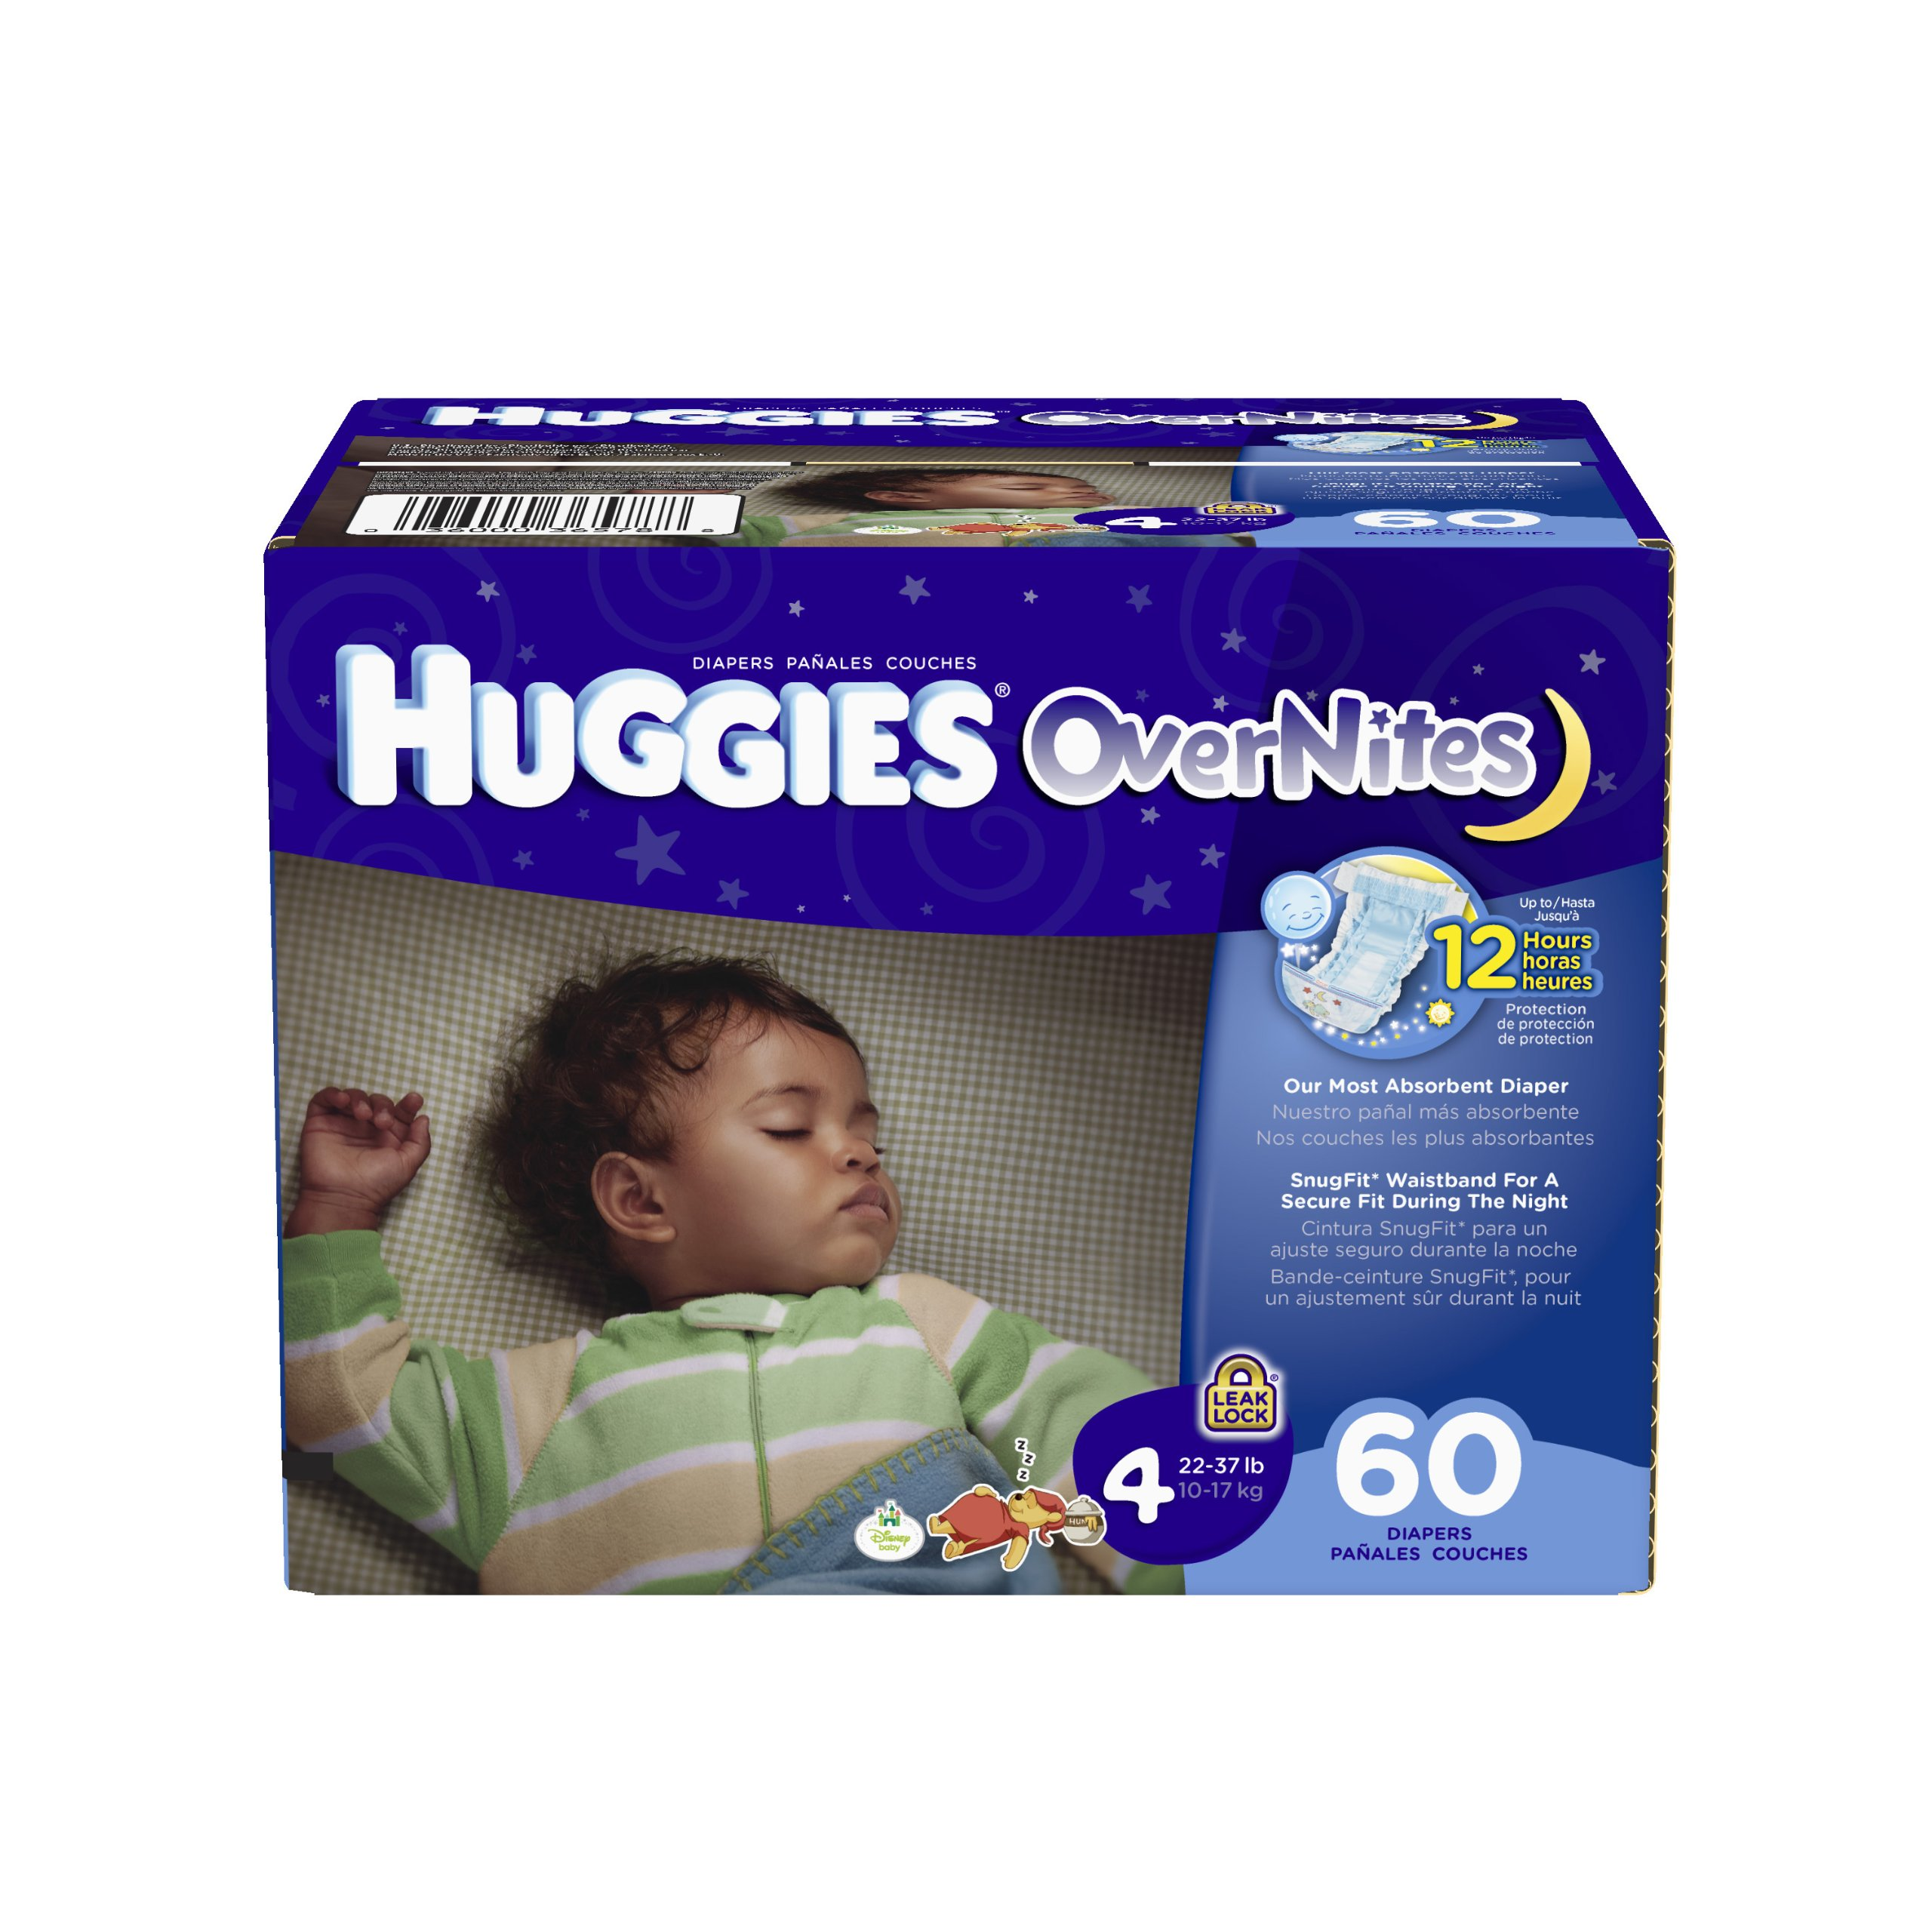 Huggies OverNites Diapers, Size 4, Big Pack, 60 Count by HUGGIES